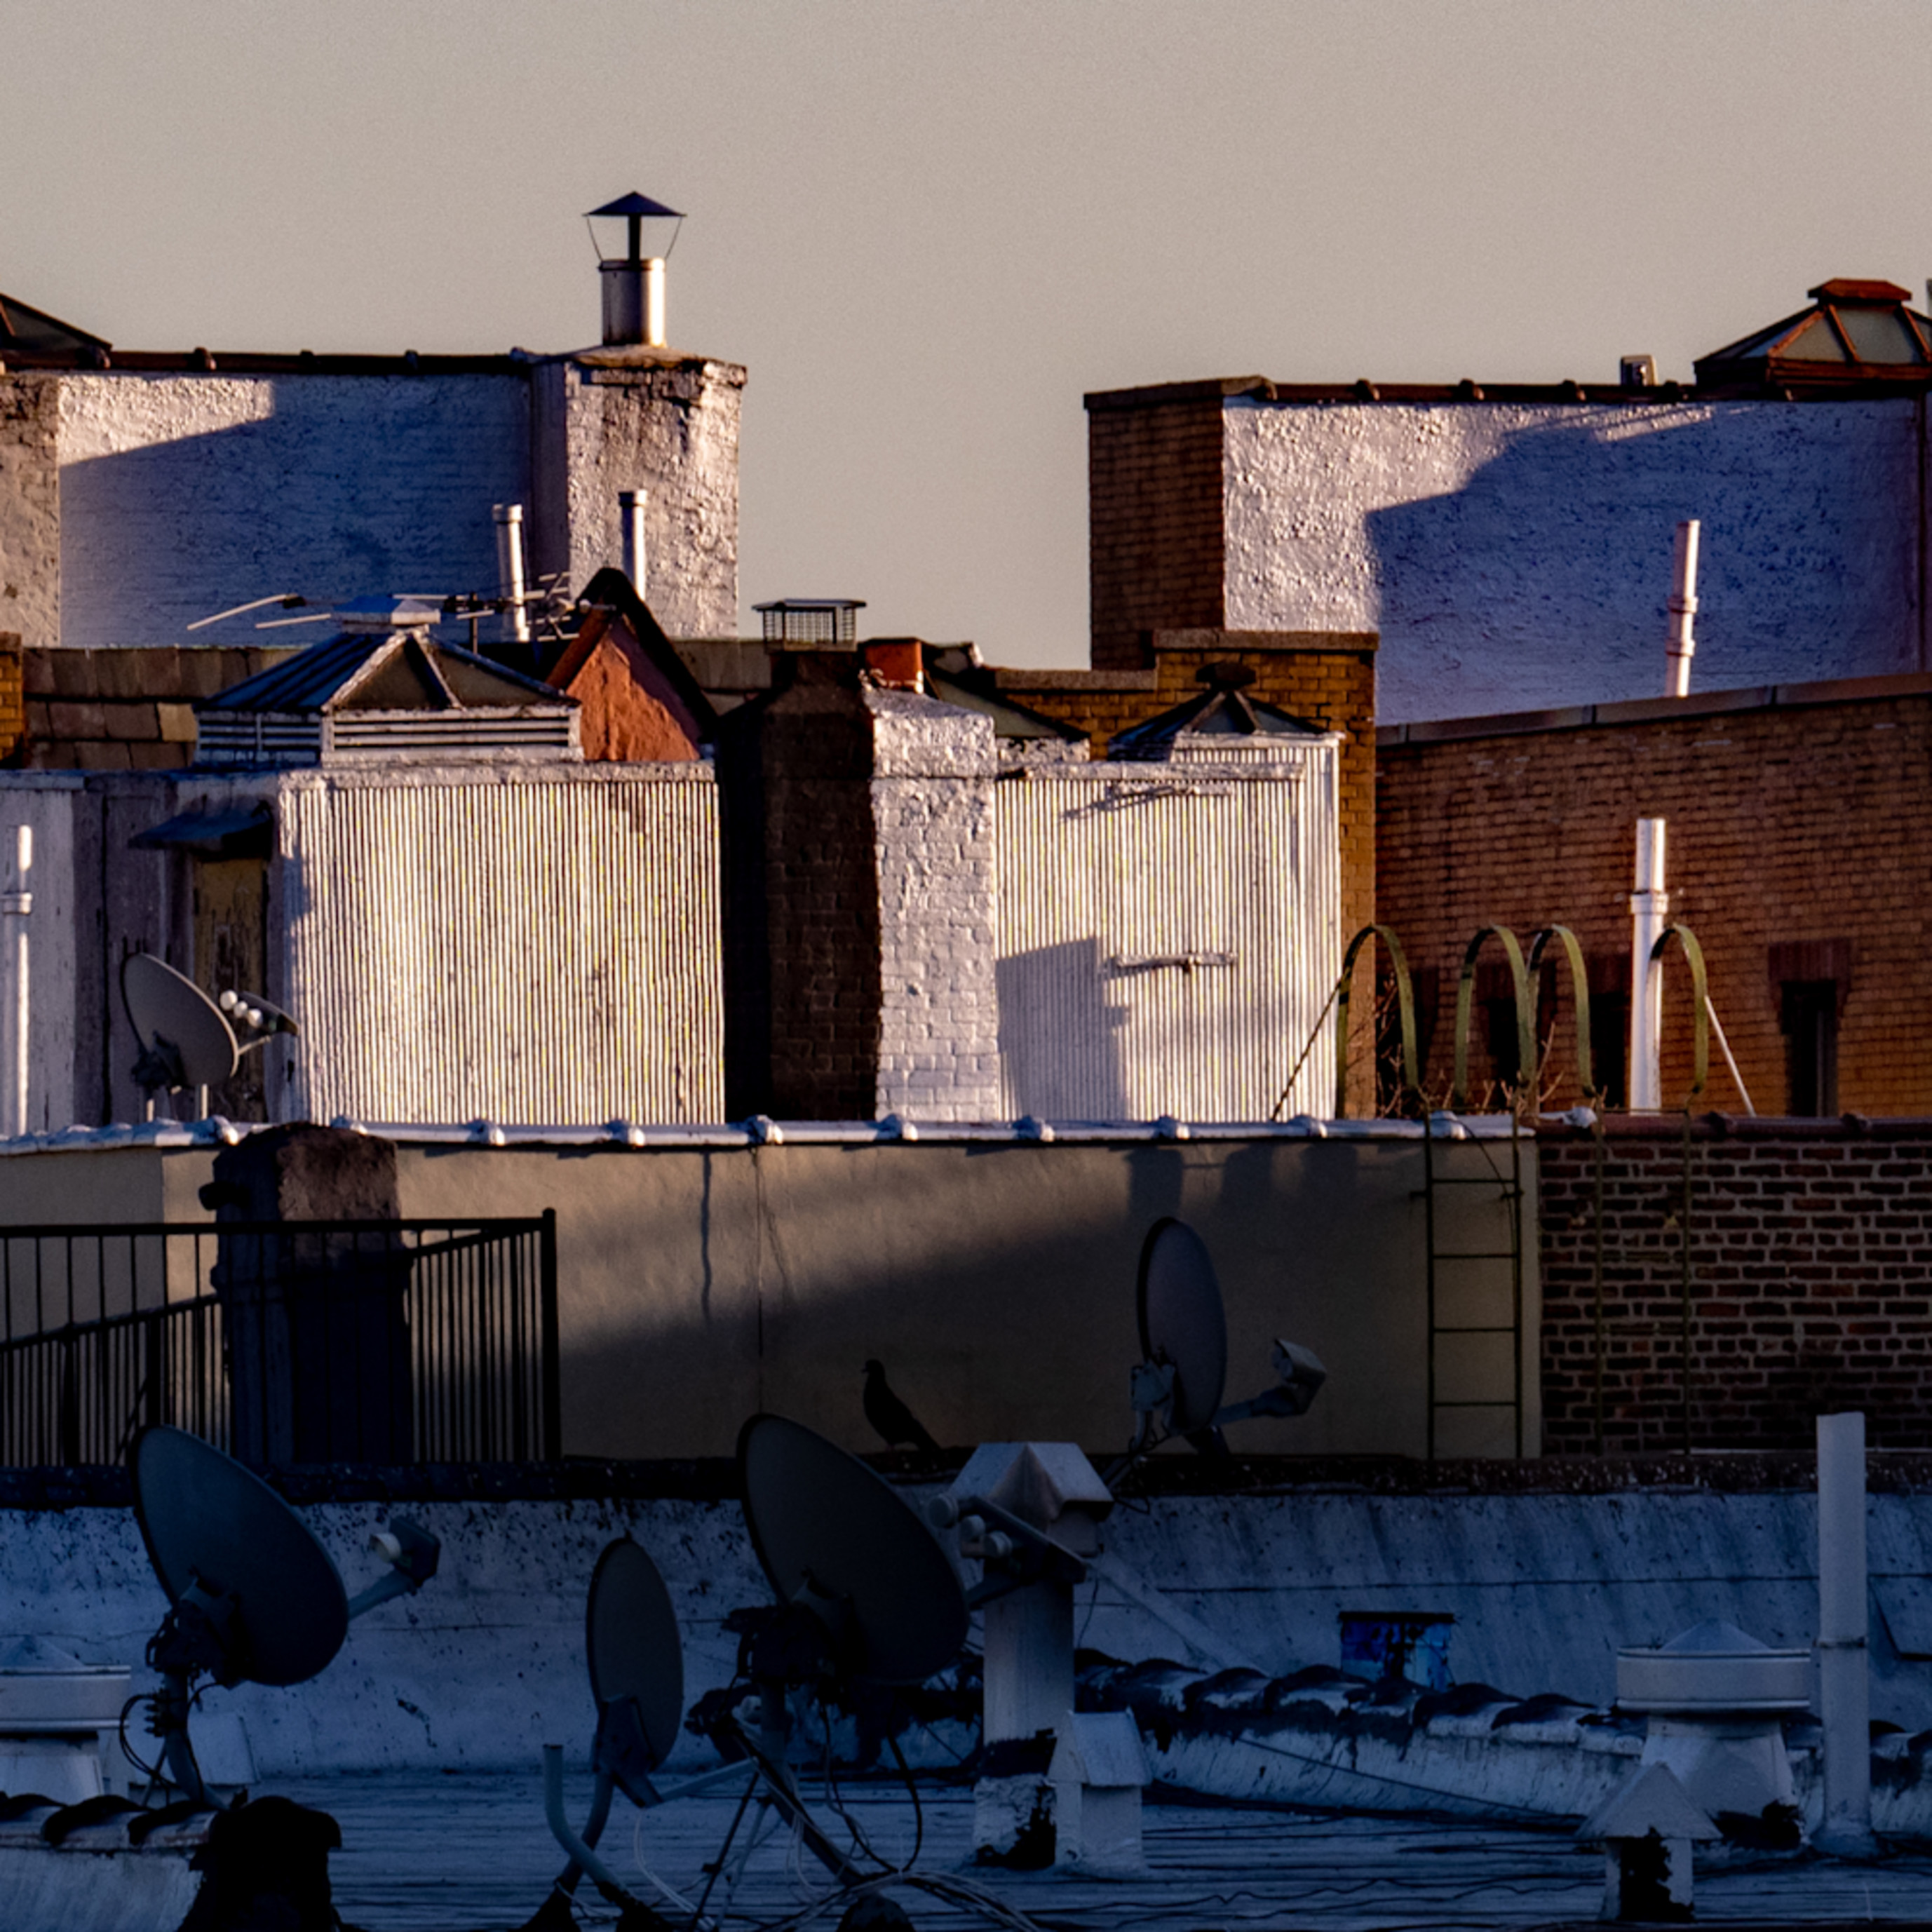 Astoria rooftops nyc 11 20 8 kq4upr